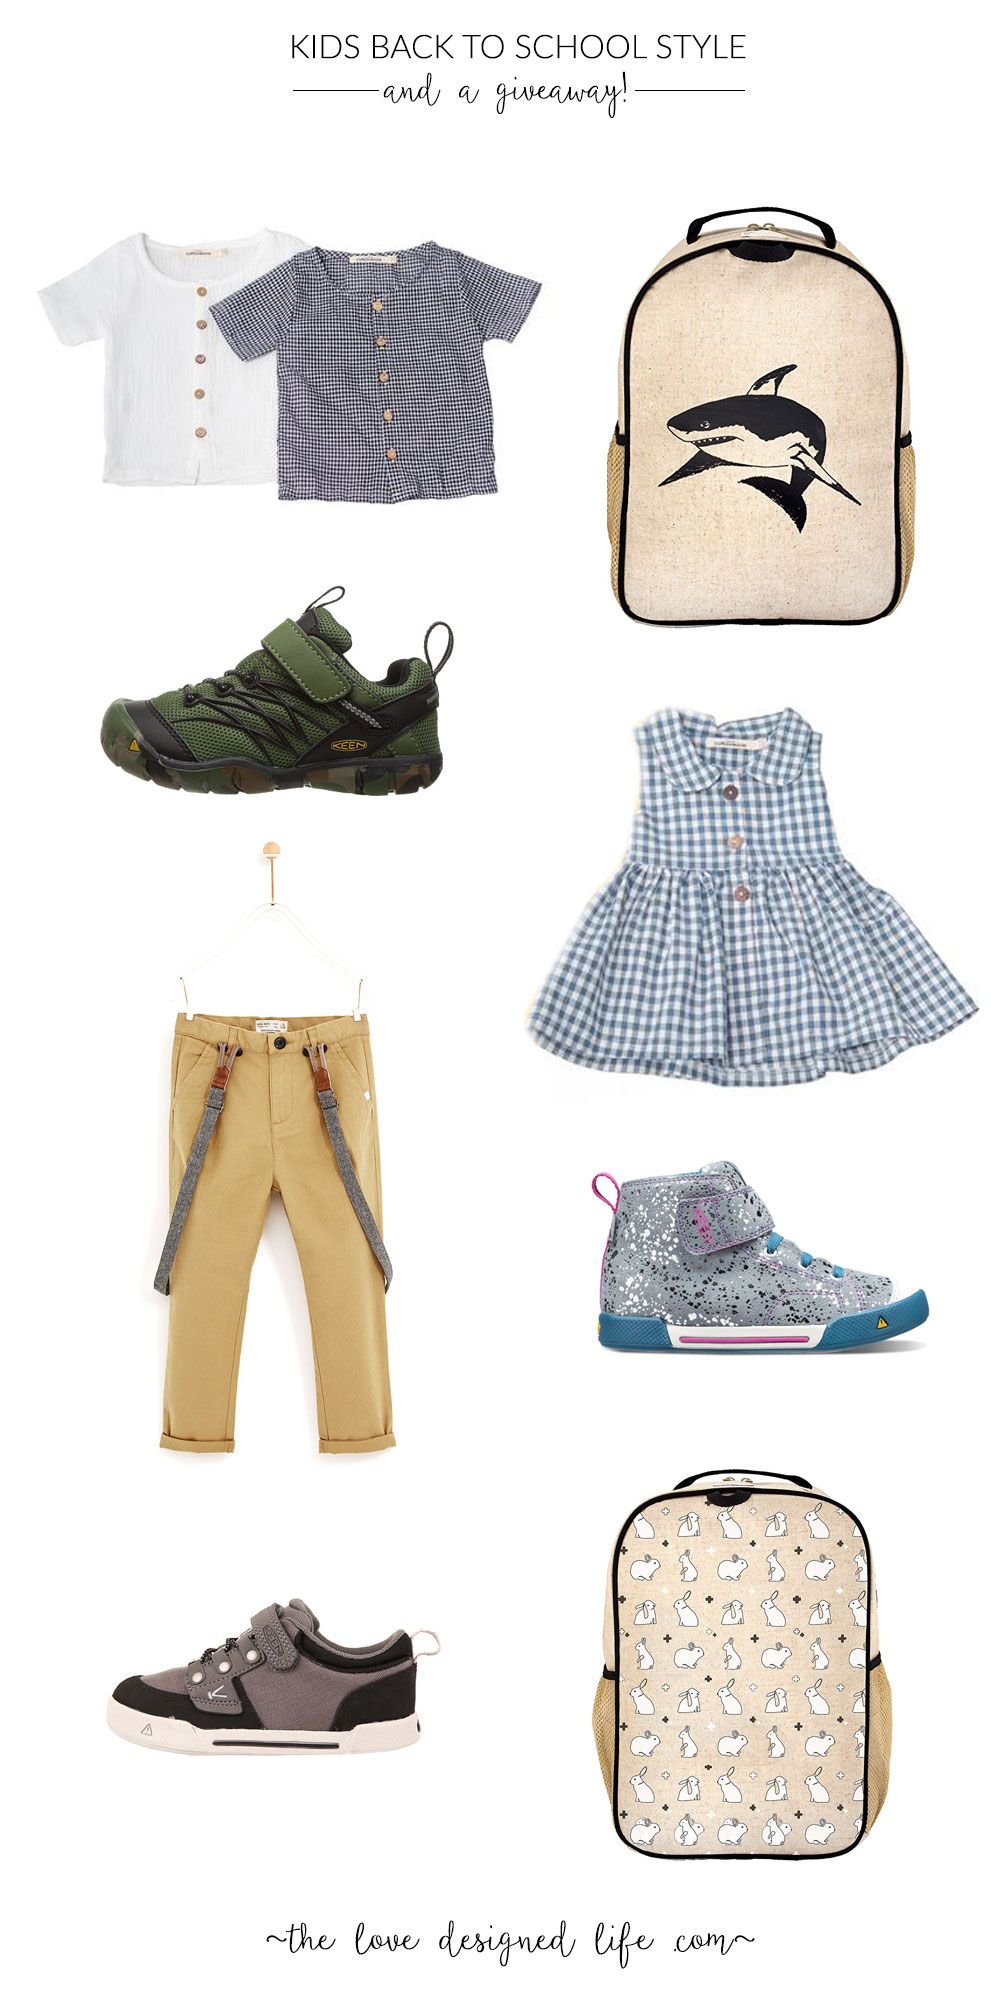 cute neutral kids clothes perfect for back to school style | thelovedesignedlife.com